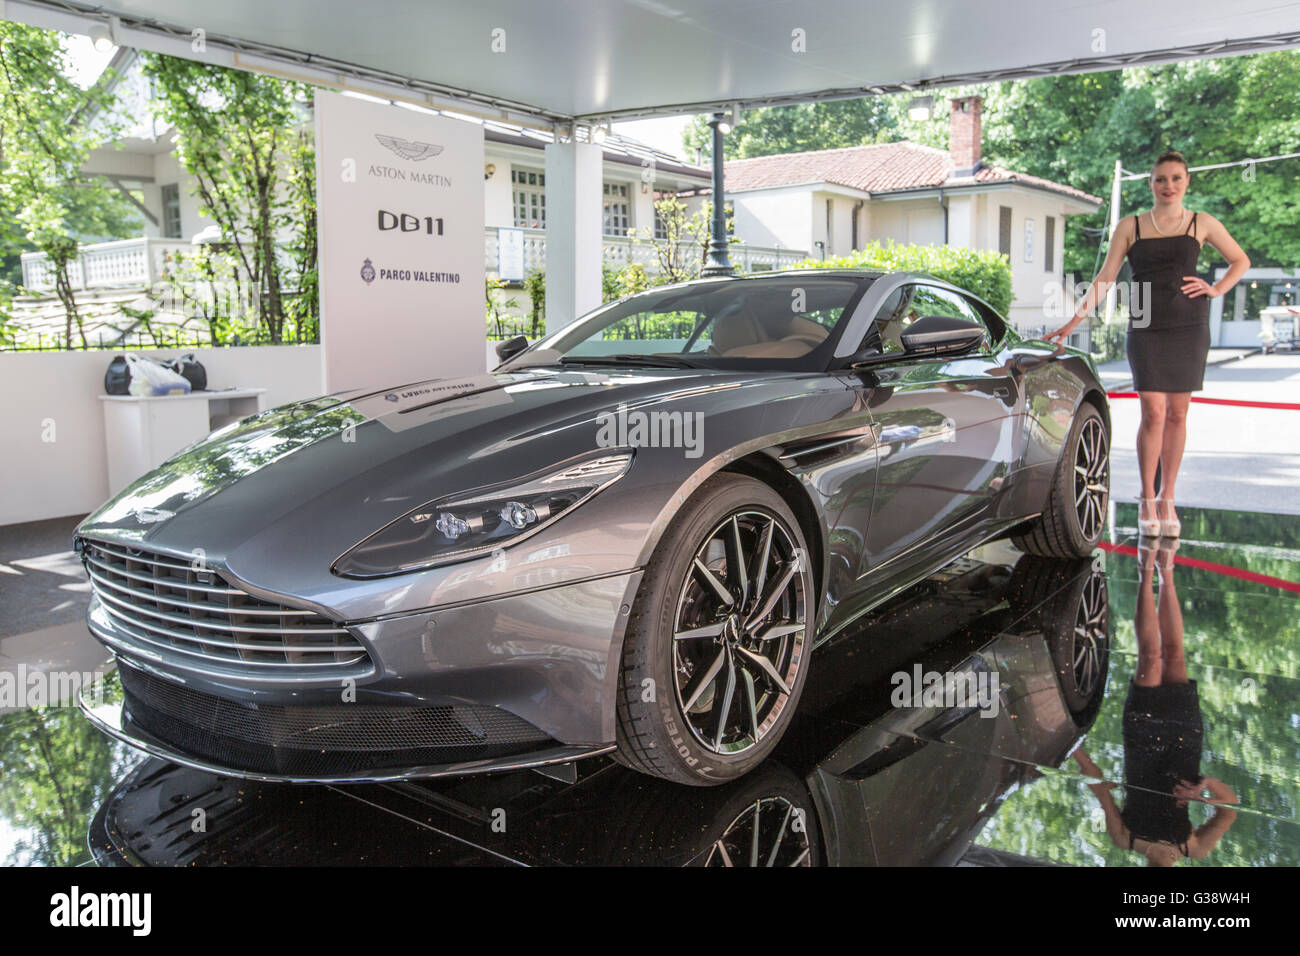 Turin, Italy. 09th June, 2016. Turin car show,from 8th to 12 th June 2016. Aston Martin DB11 Credit:  RENATO VALTERZA/Alamy - Stock Image